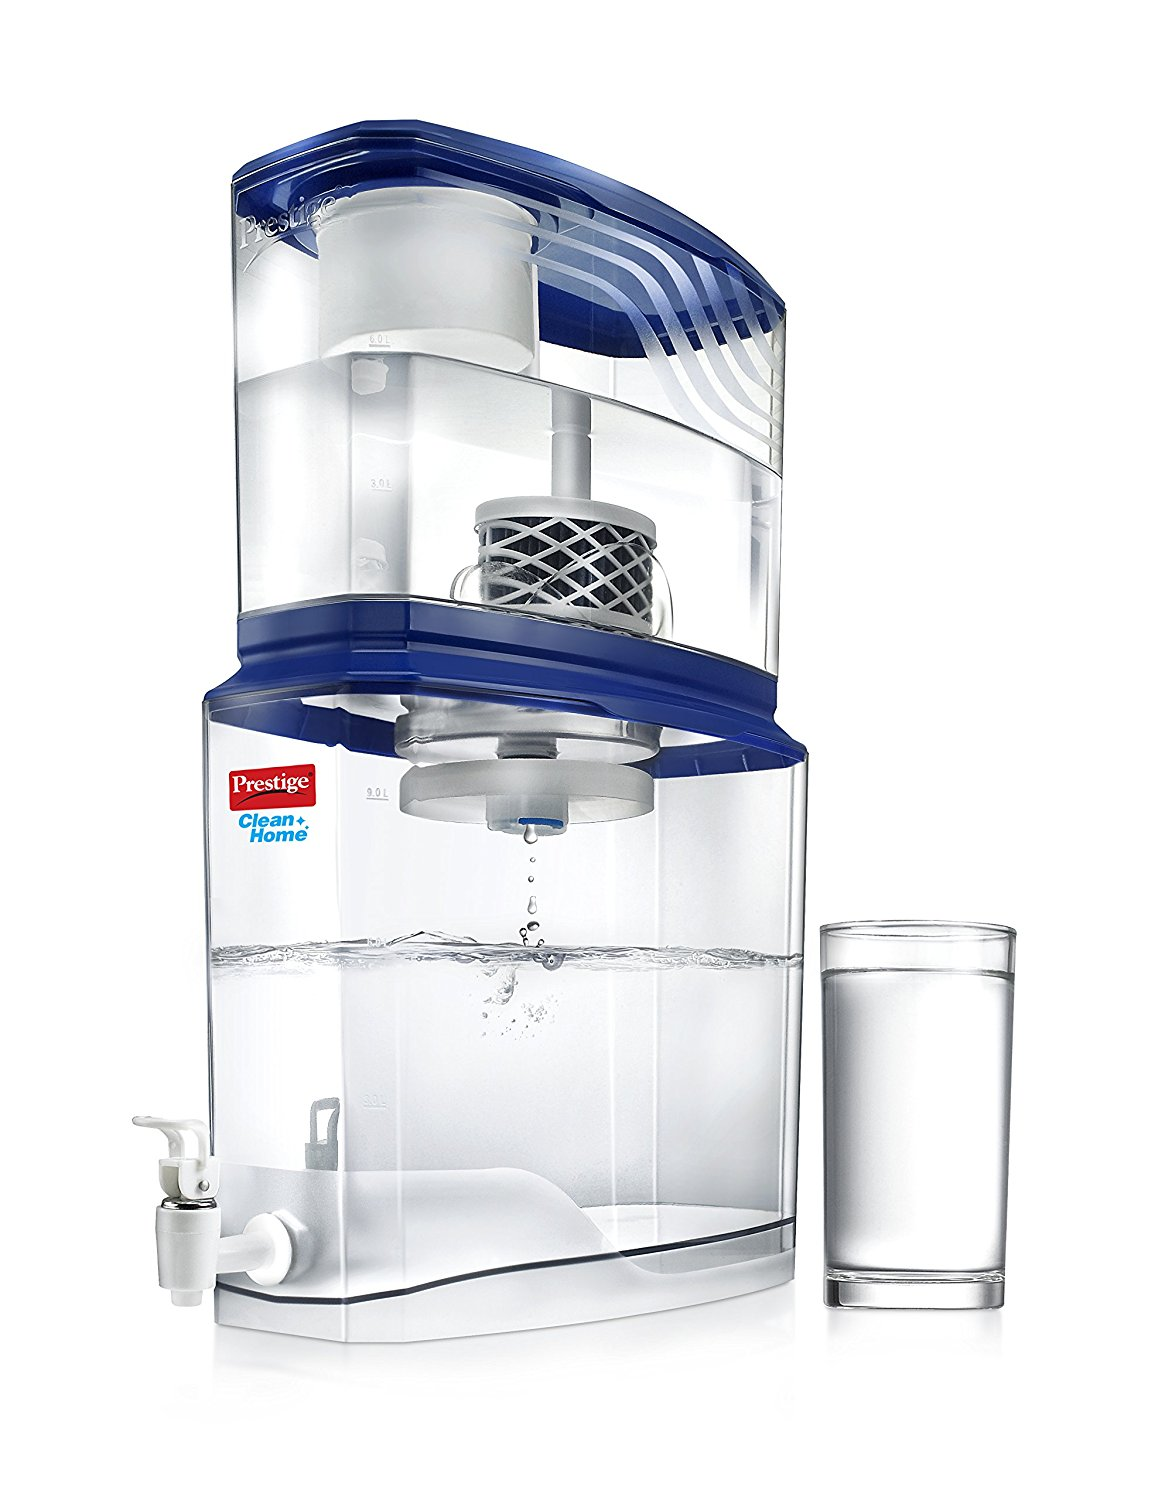 The 5 Best Non Electric Water Purifiers in India 2018 – Reviews & Buying Guide